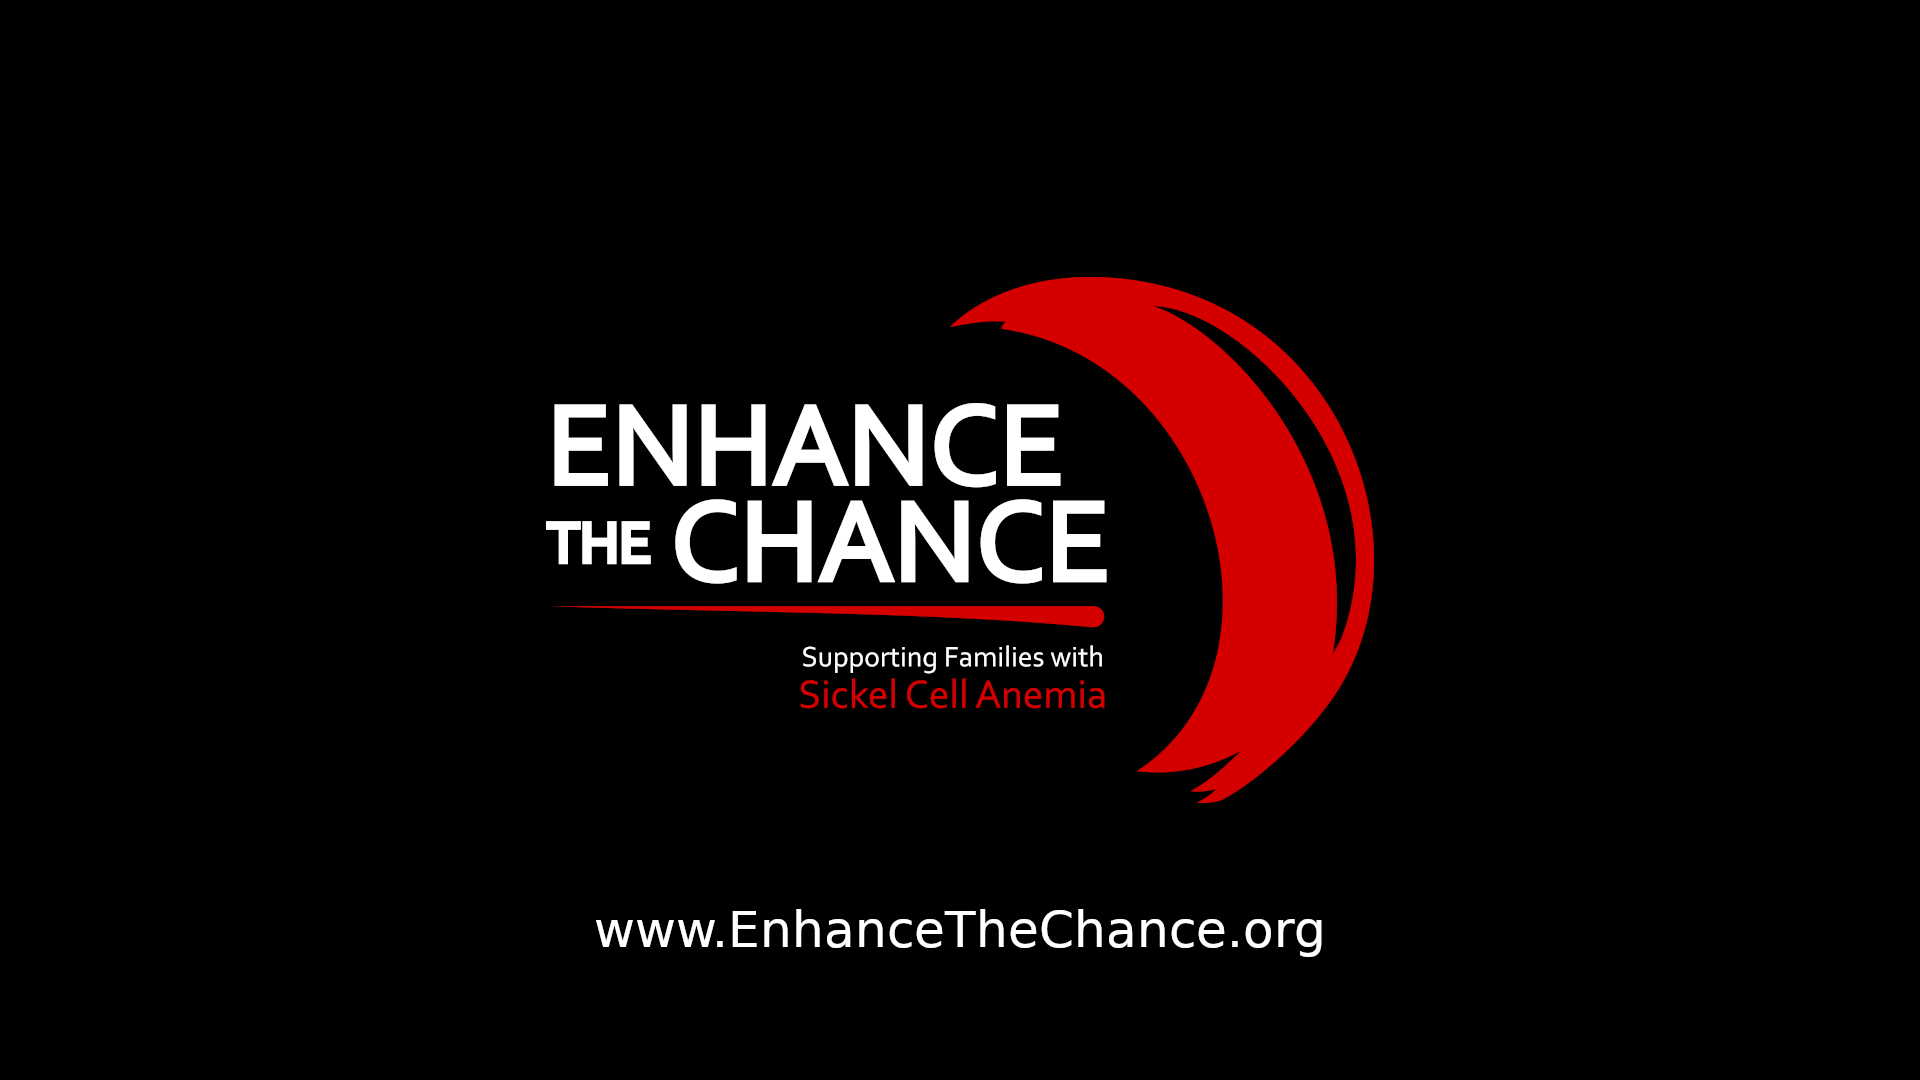 enhance-the-chance-logo-design-servant-productions